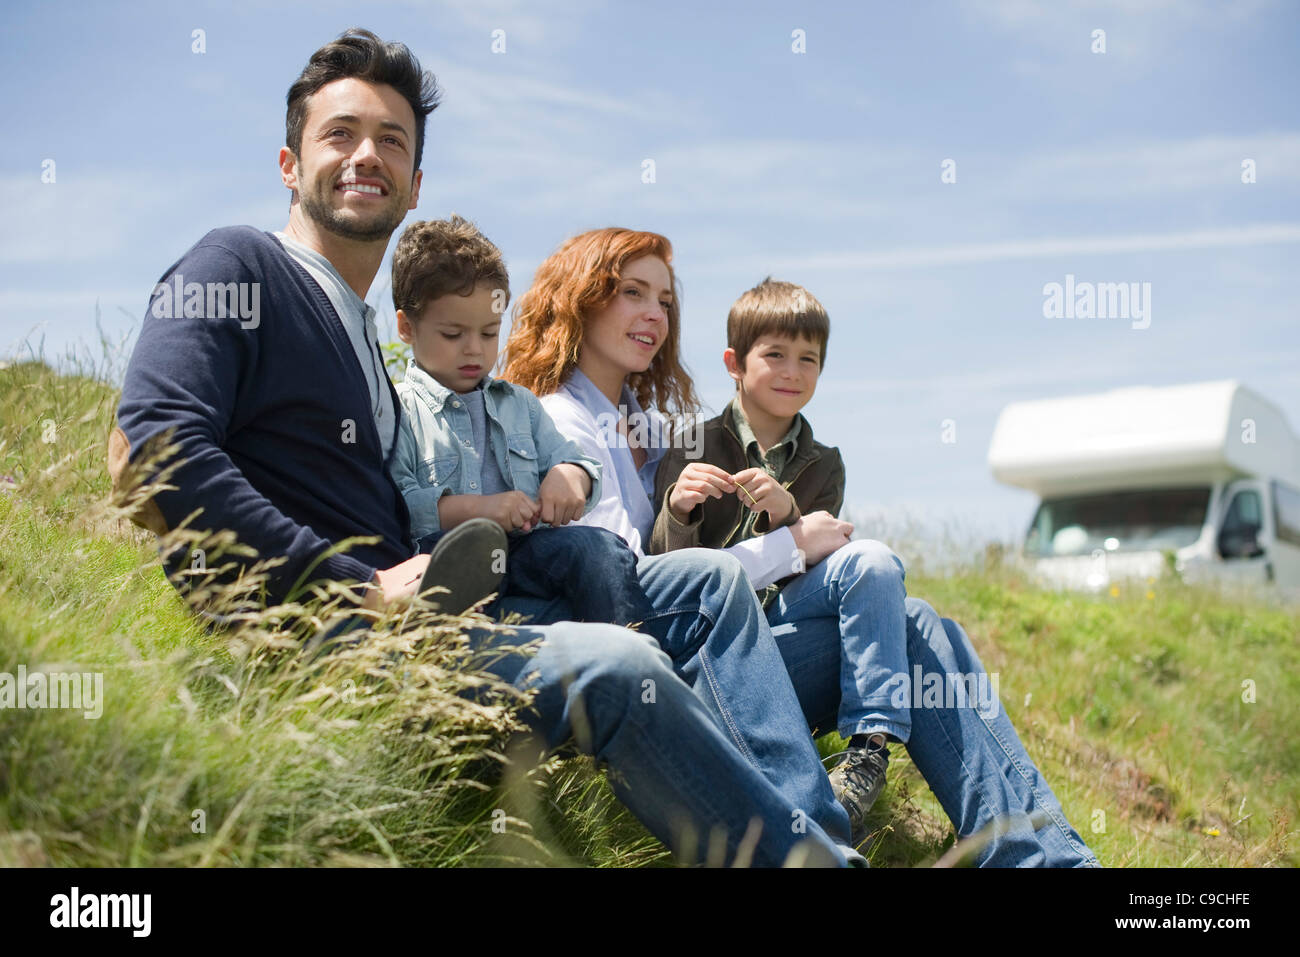 Parents and young boys sitting on meadow - Stock Image